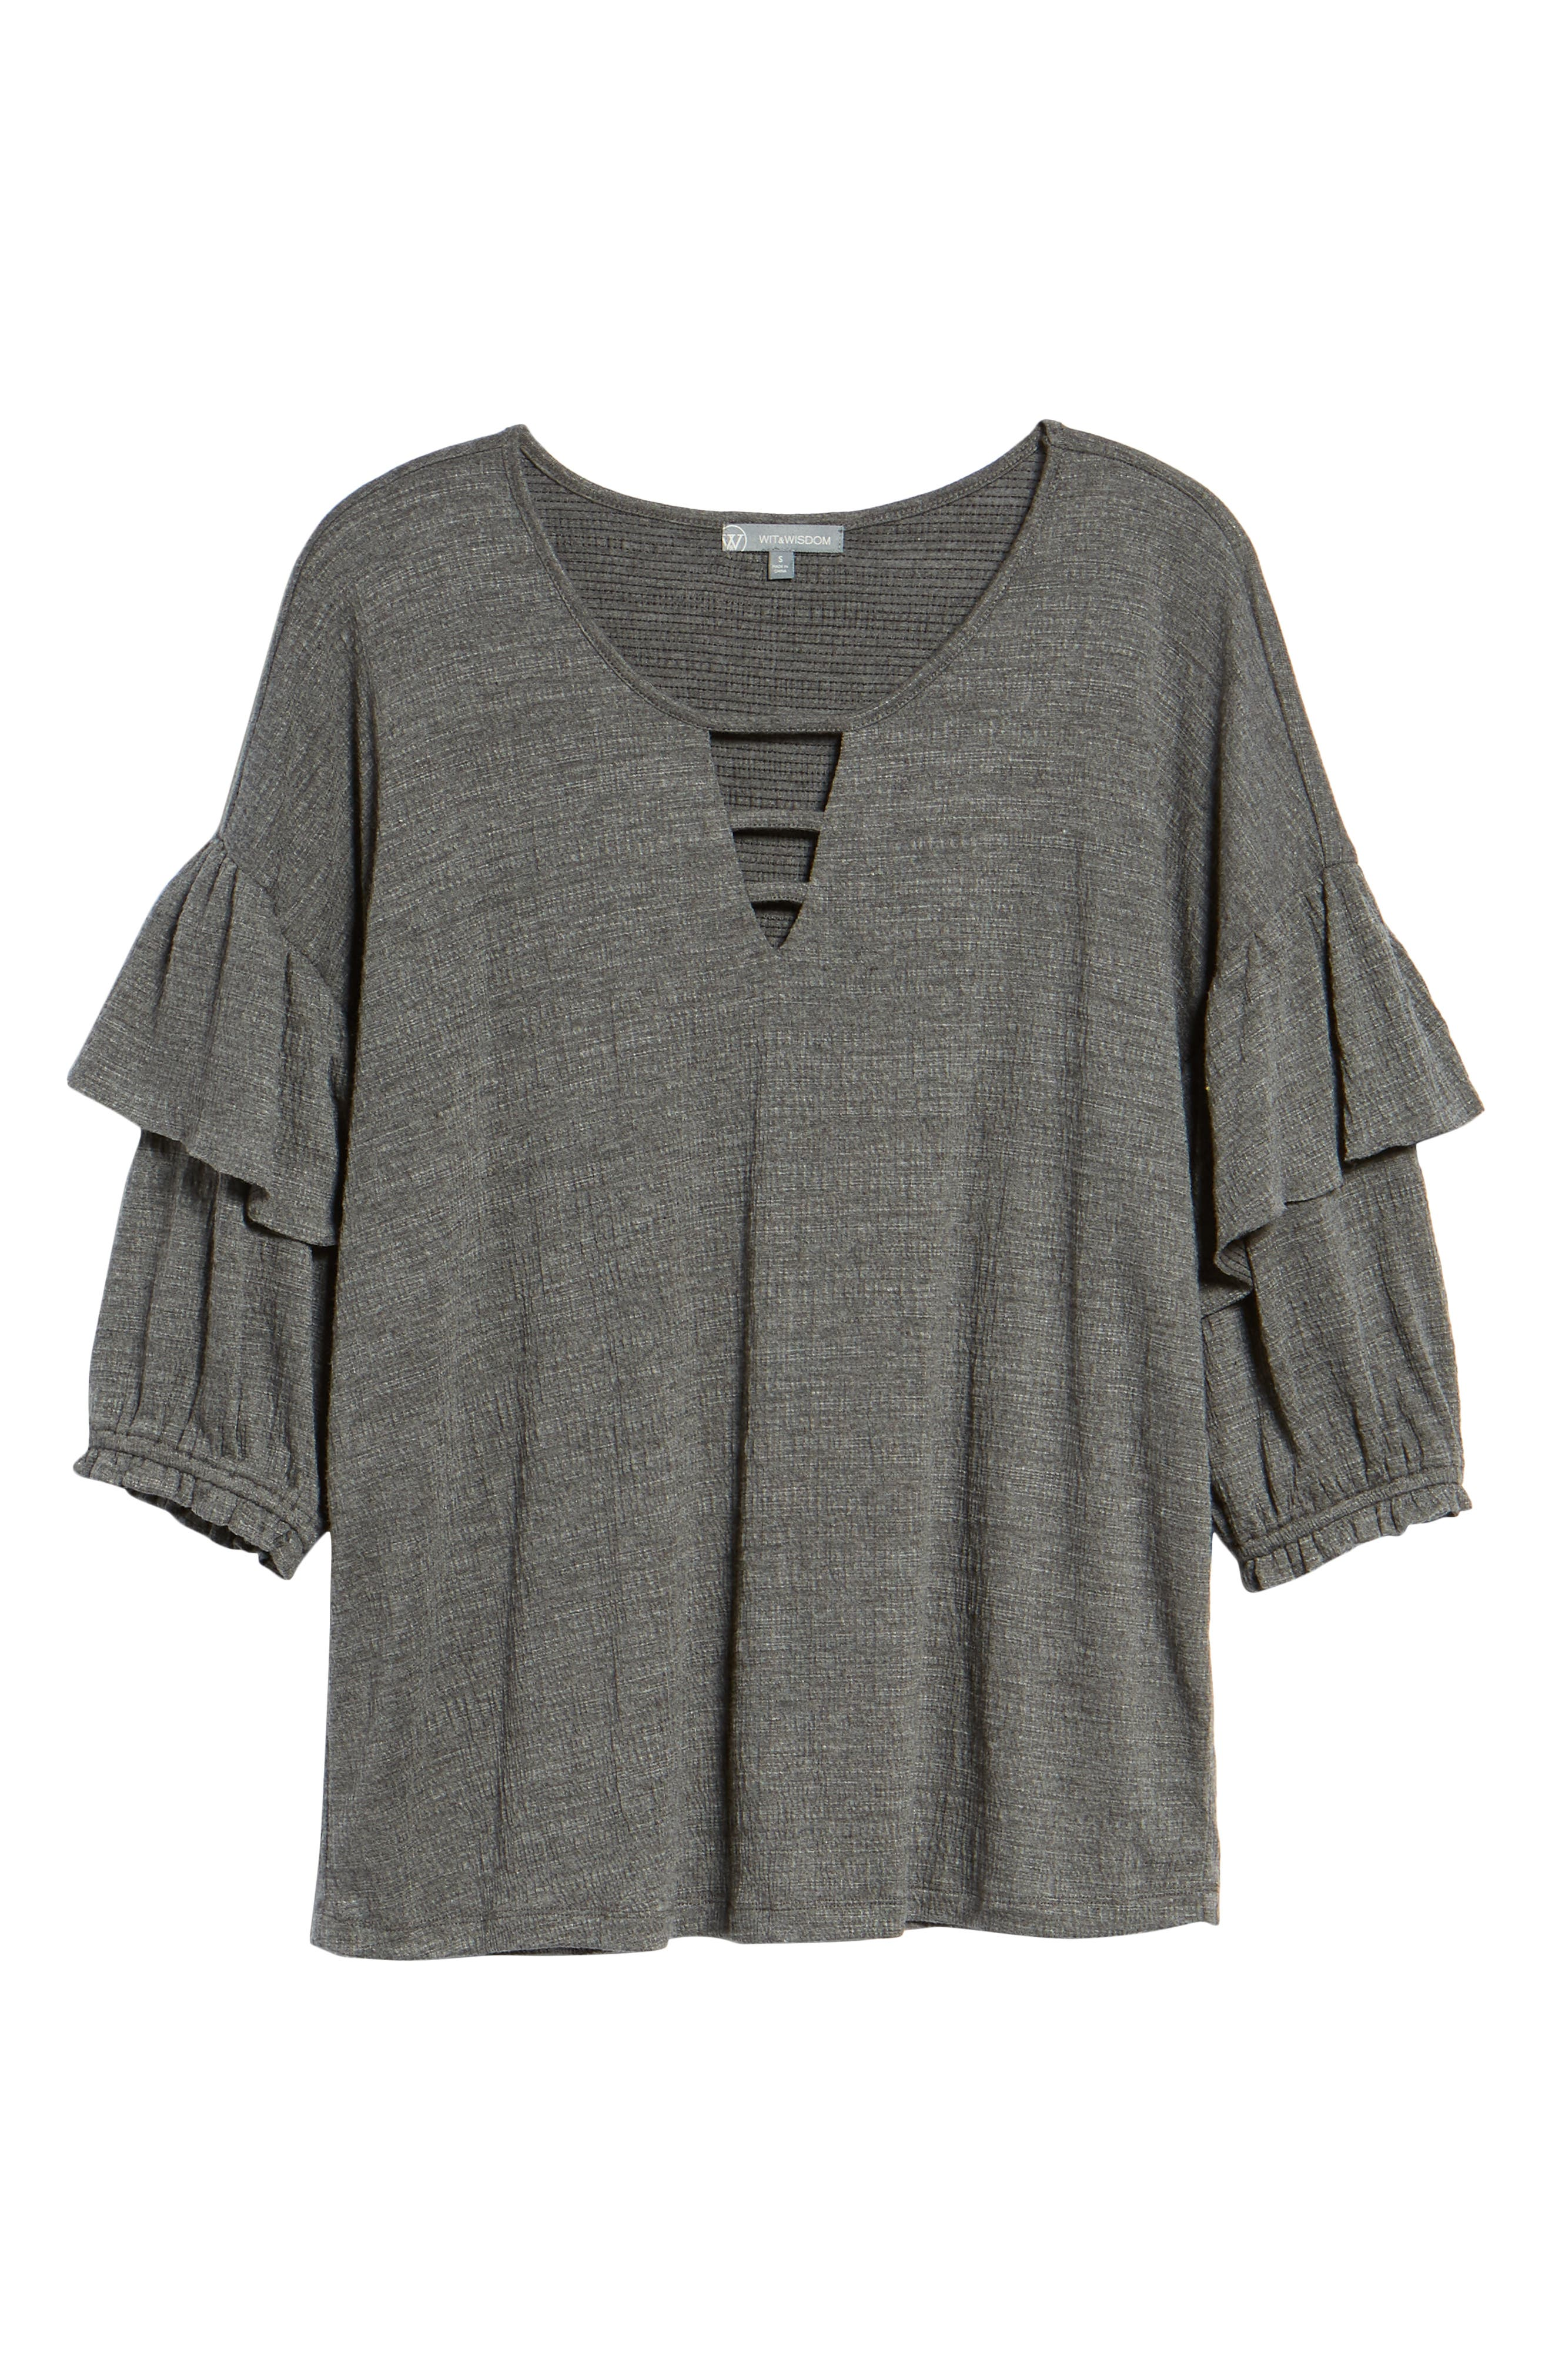 Ruffle Top,                             Alternate thumbnail 6, color,                             CHARCOAL